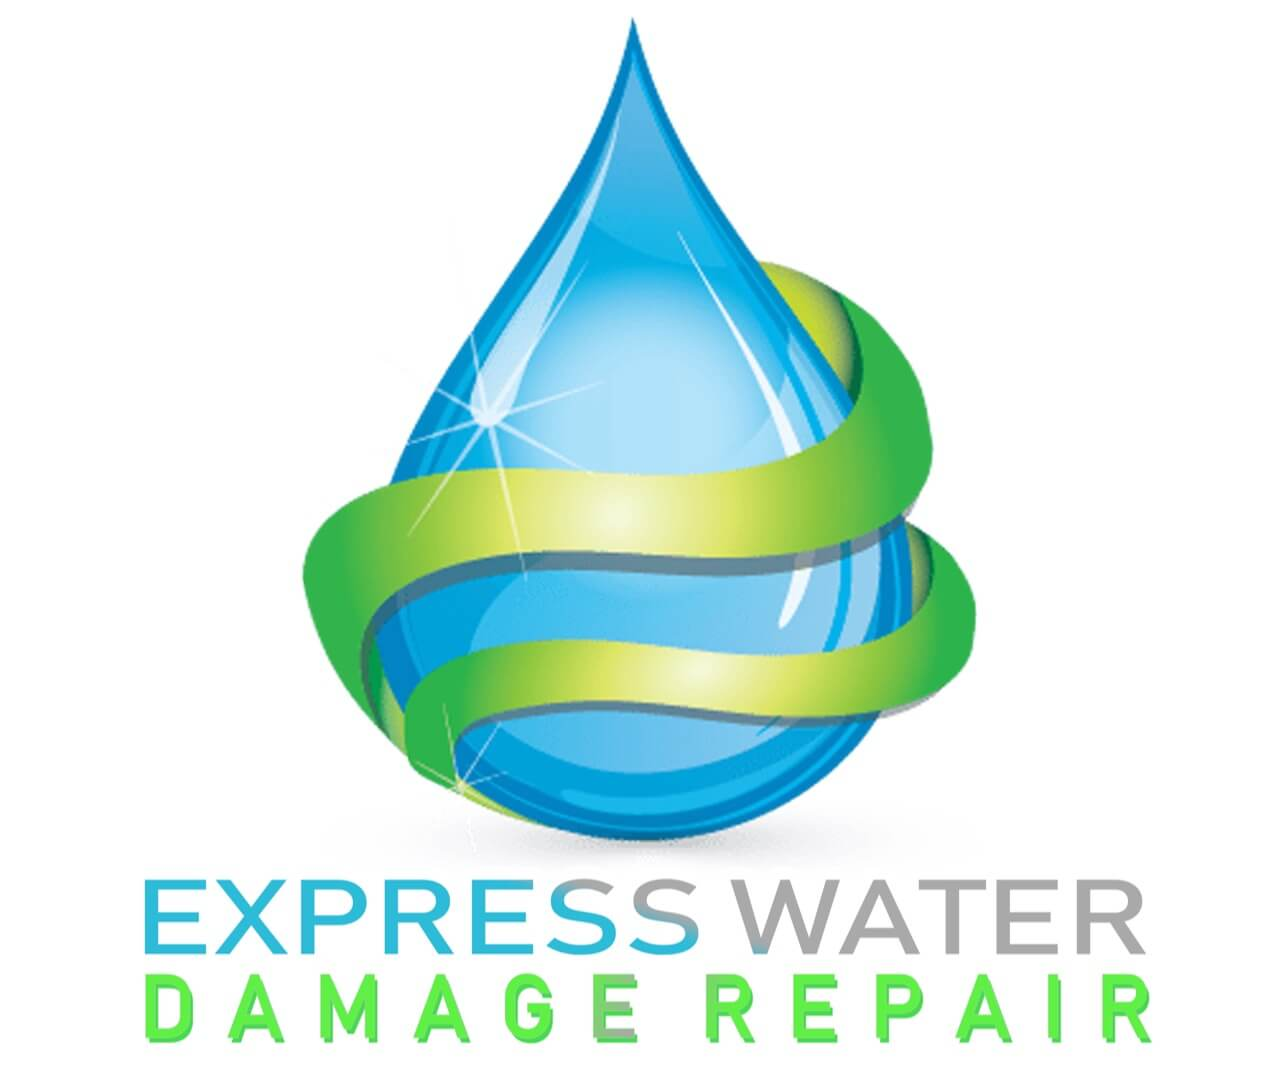 Express Water Damage Repair